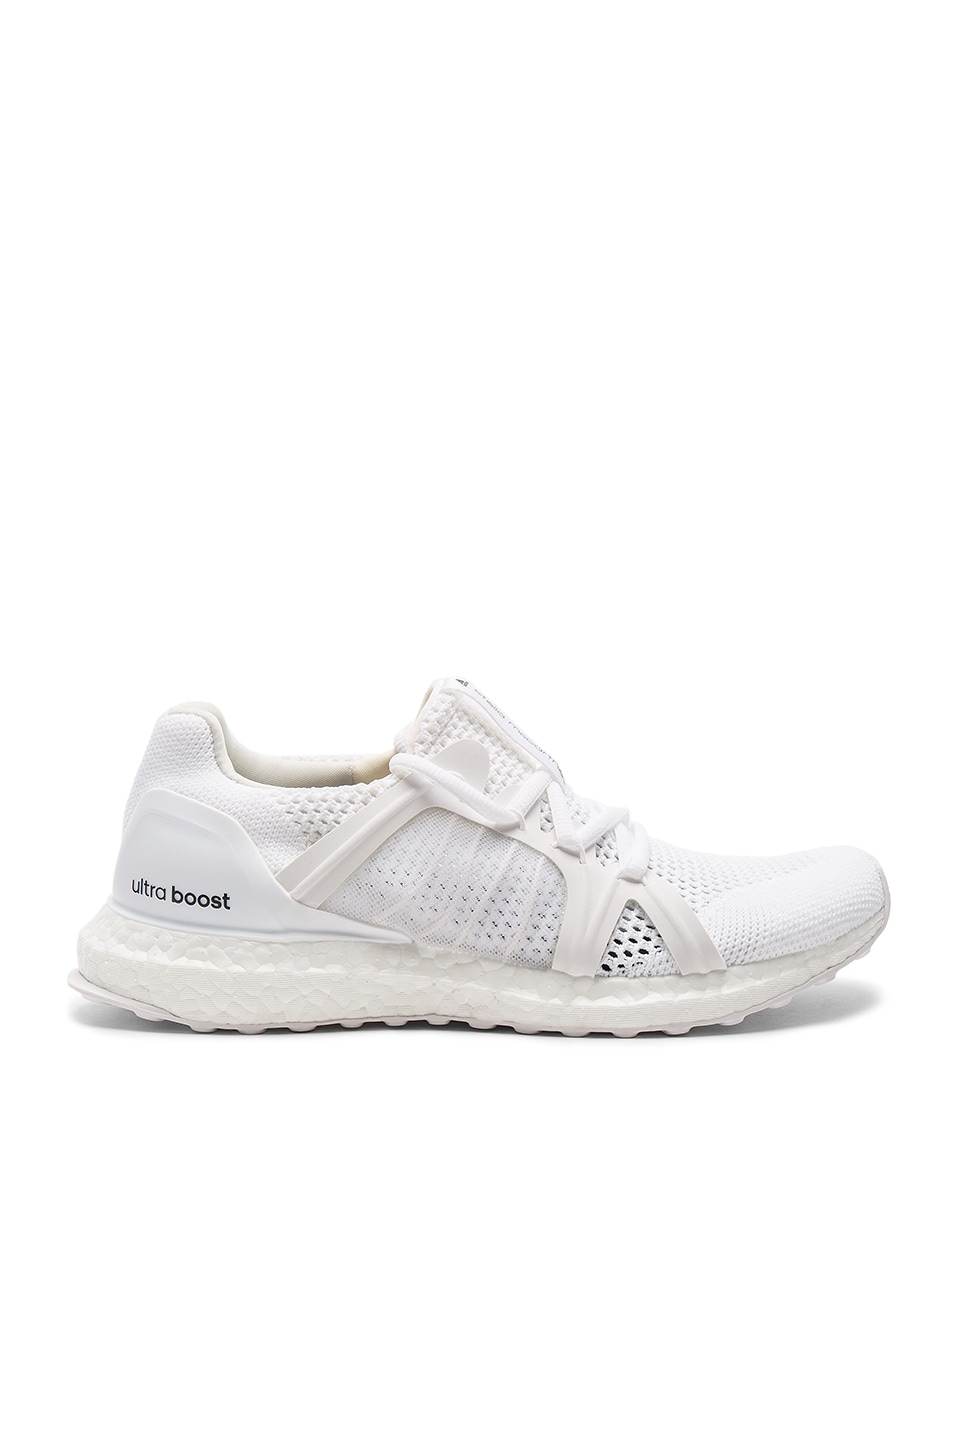 adidas by Stella McCartney Ultra Boost Sneaker in White & Core Black